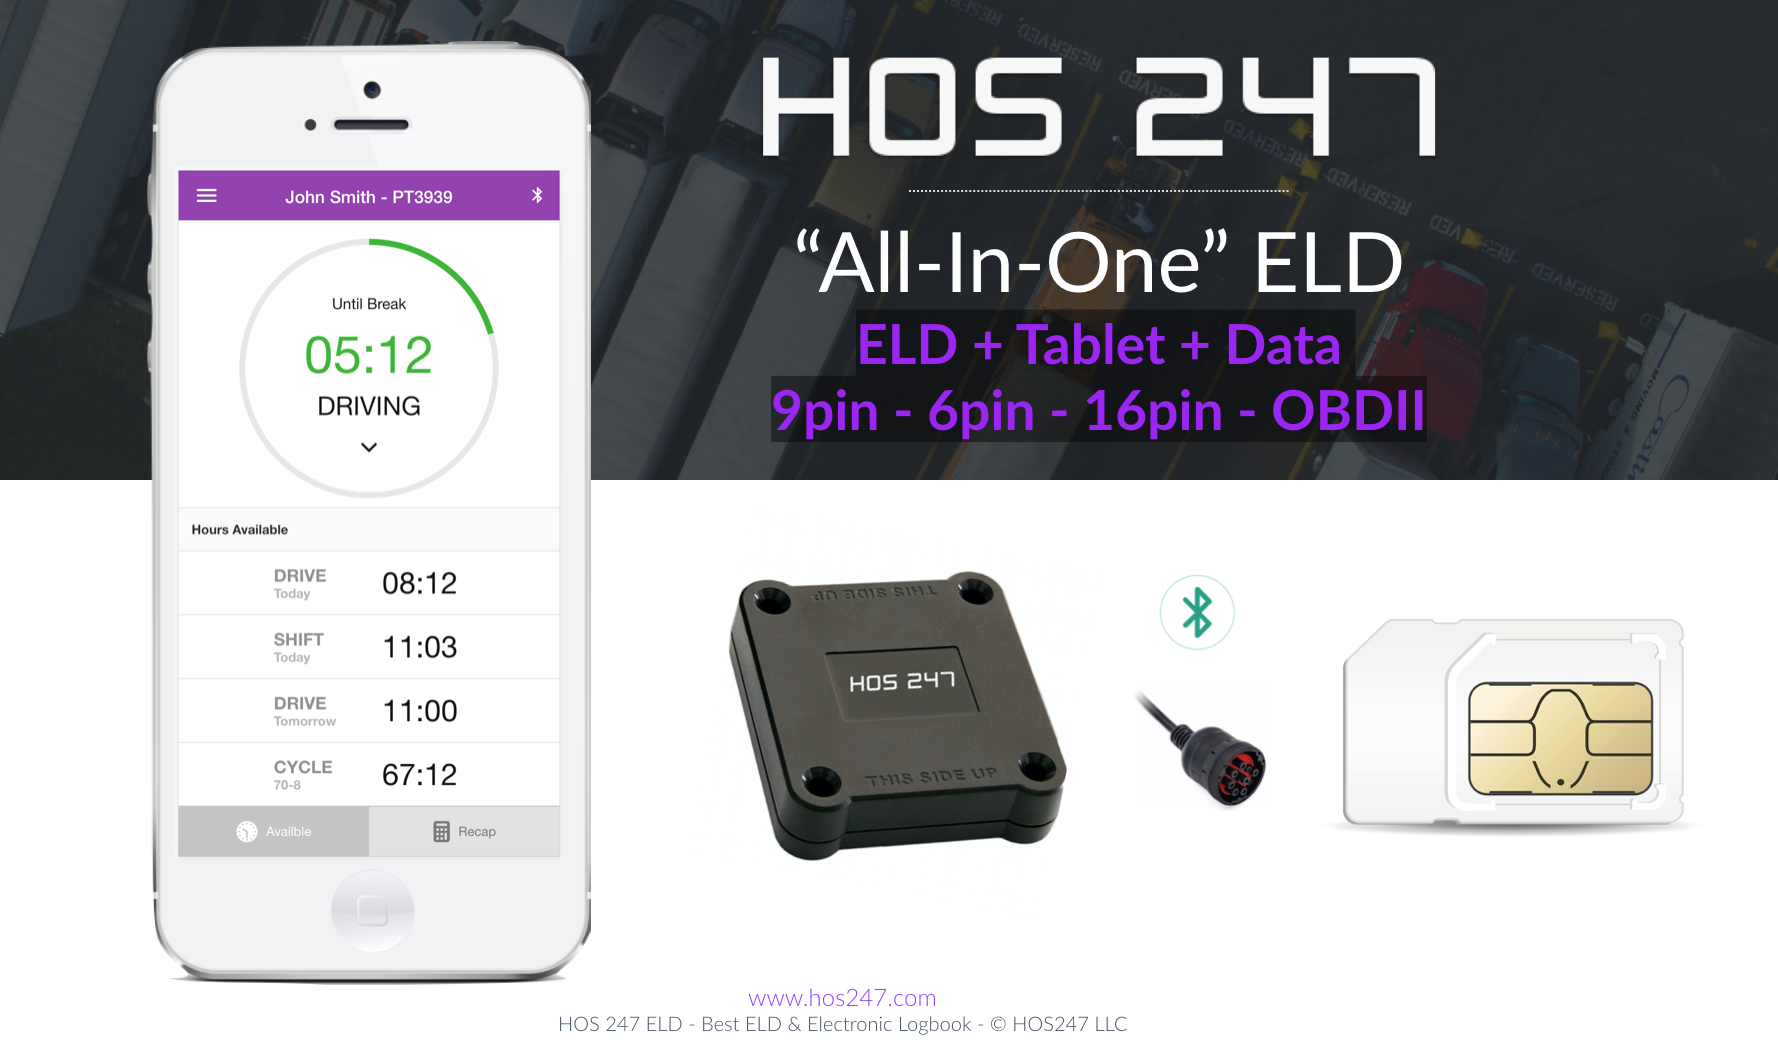 All-In-One_ELD_by_HOS247